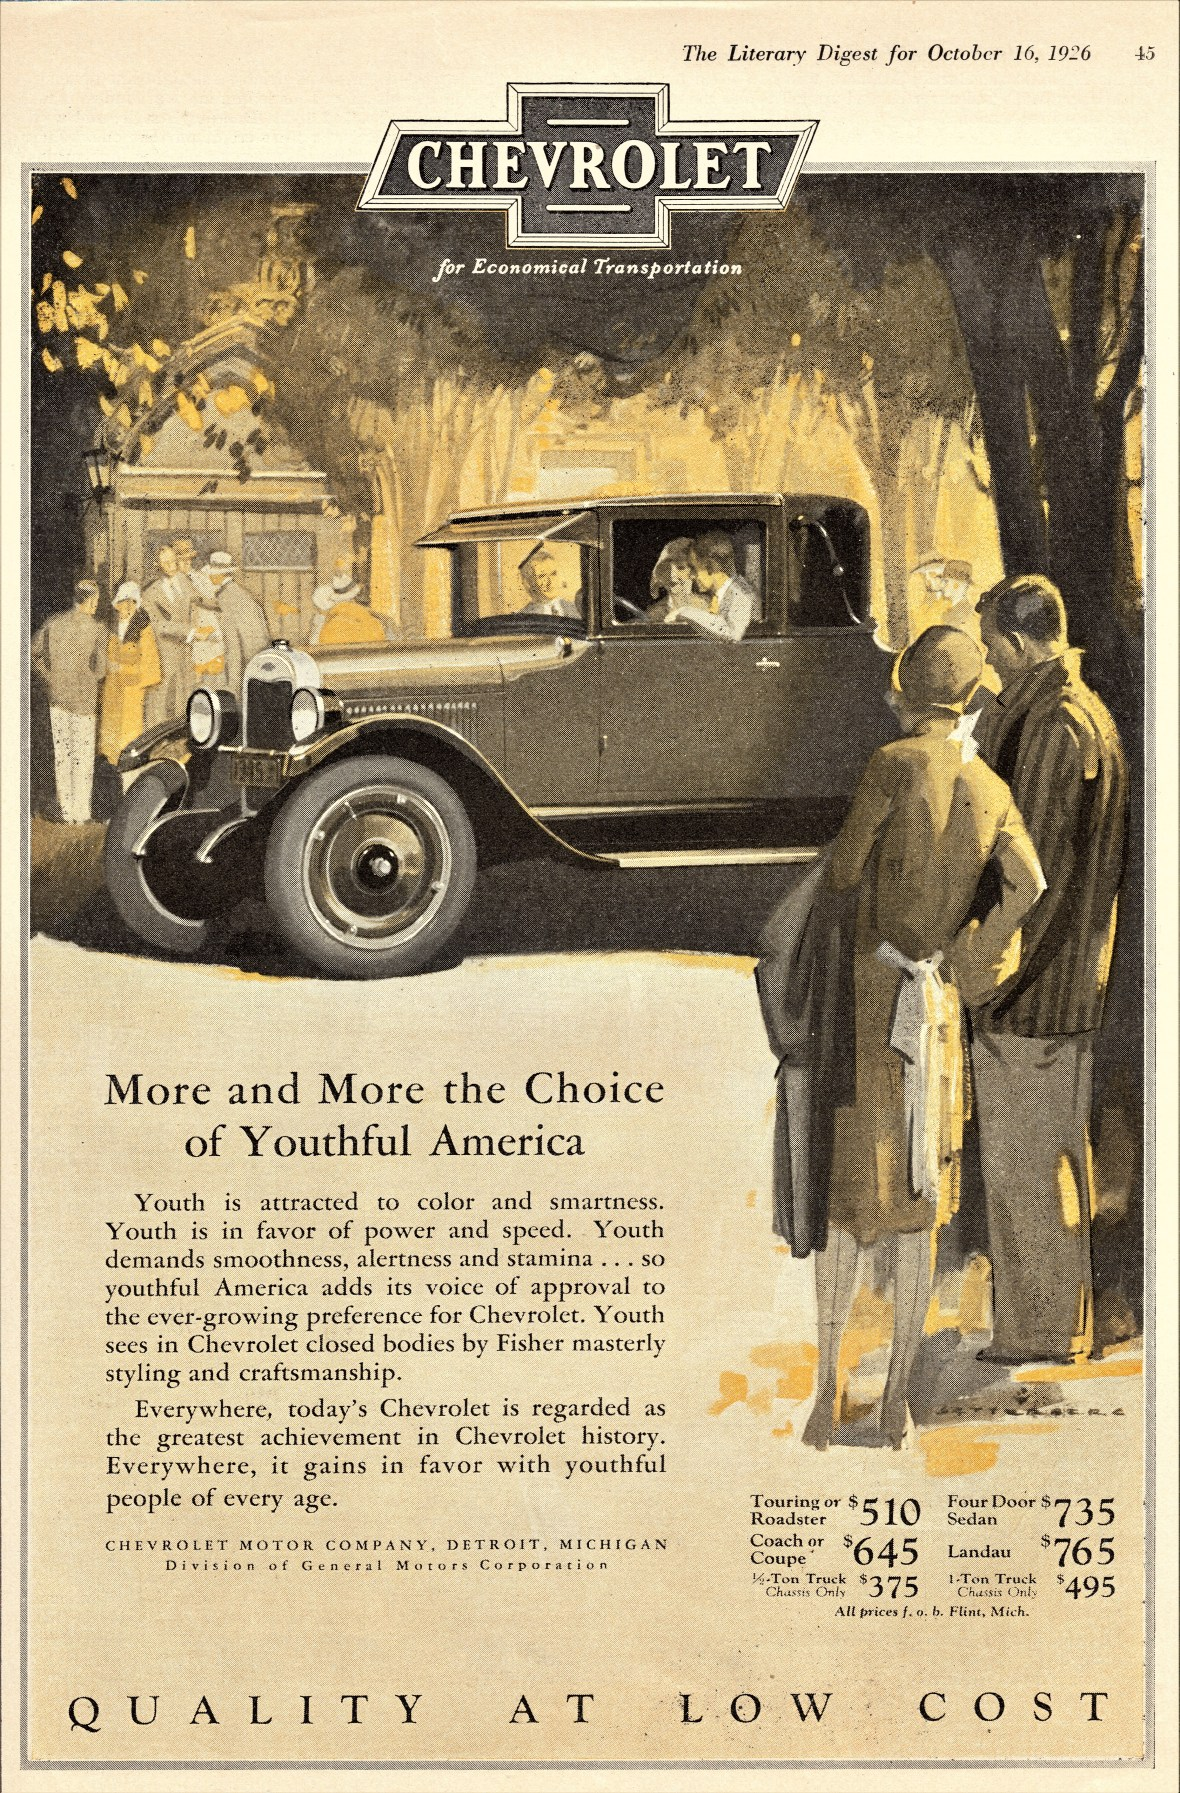 1926 Chevrolet Coupe - published in The Literary Digest - October 16, 1926